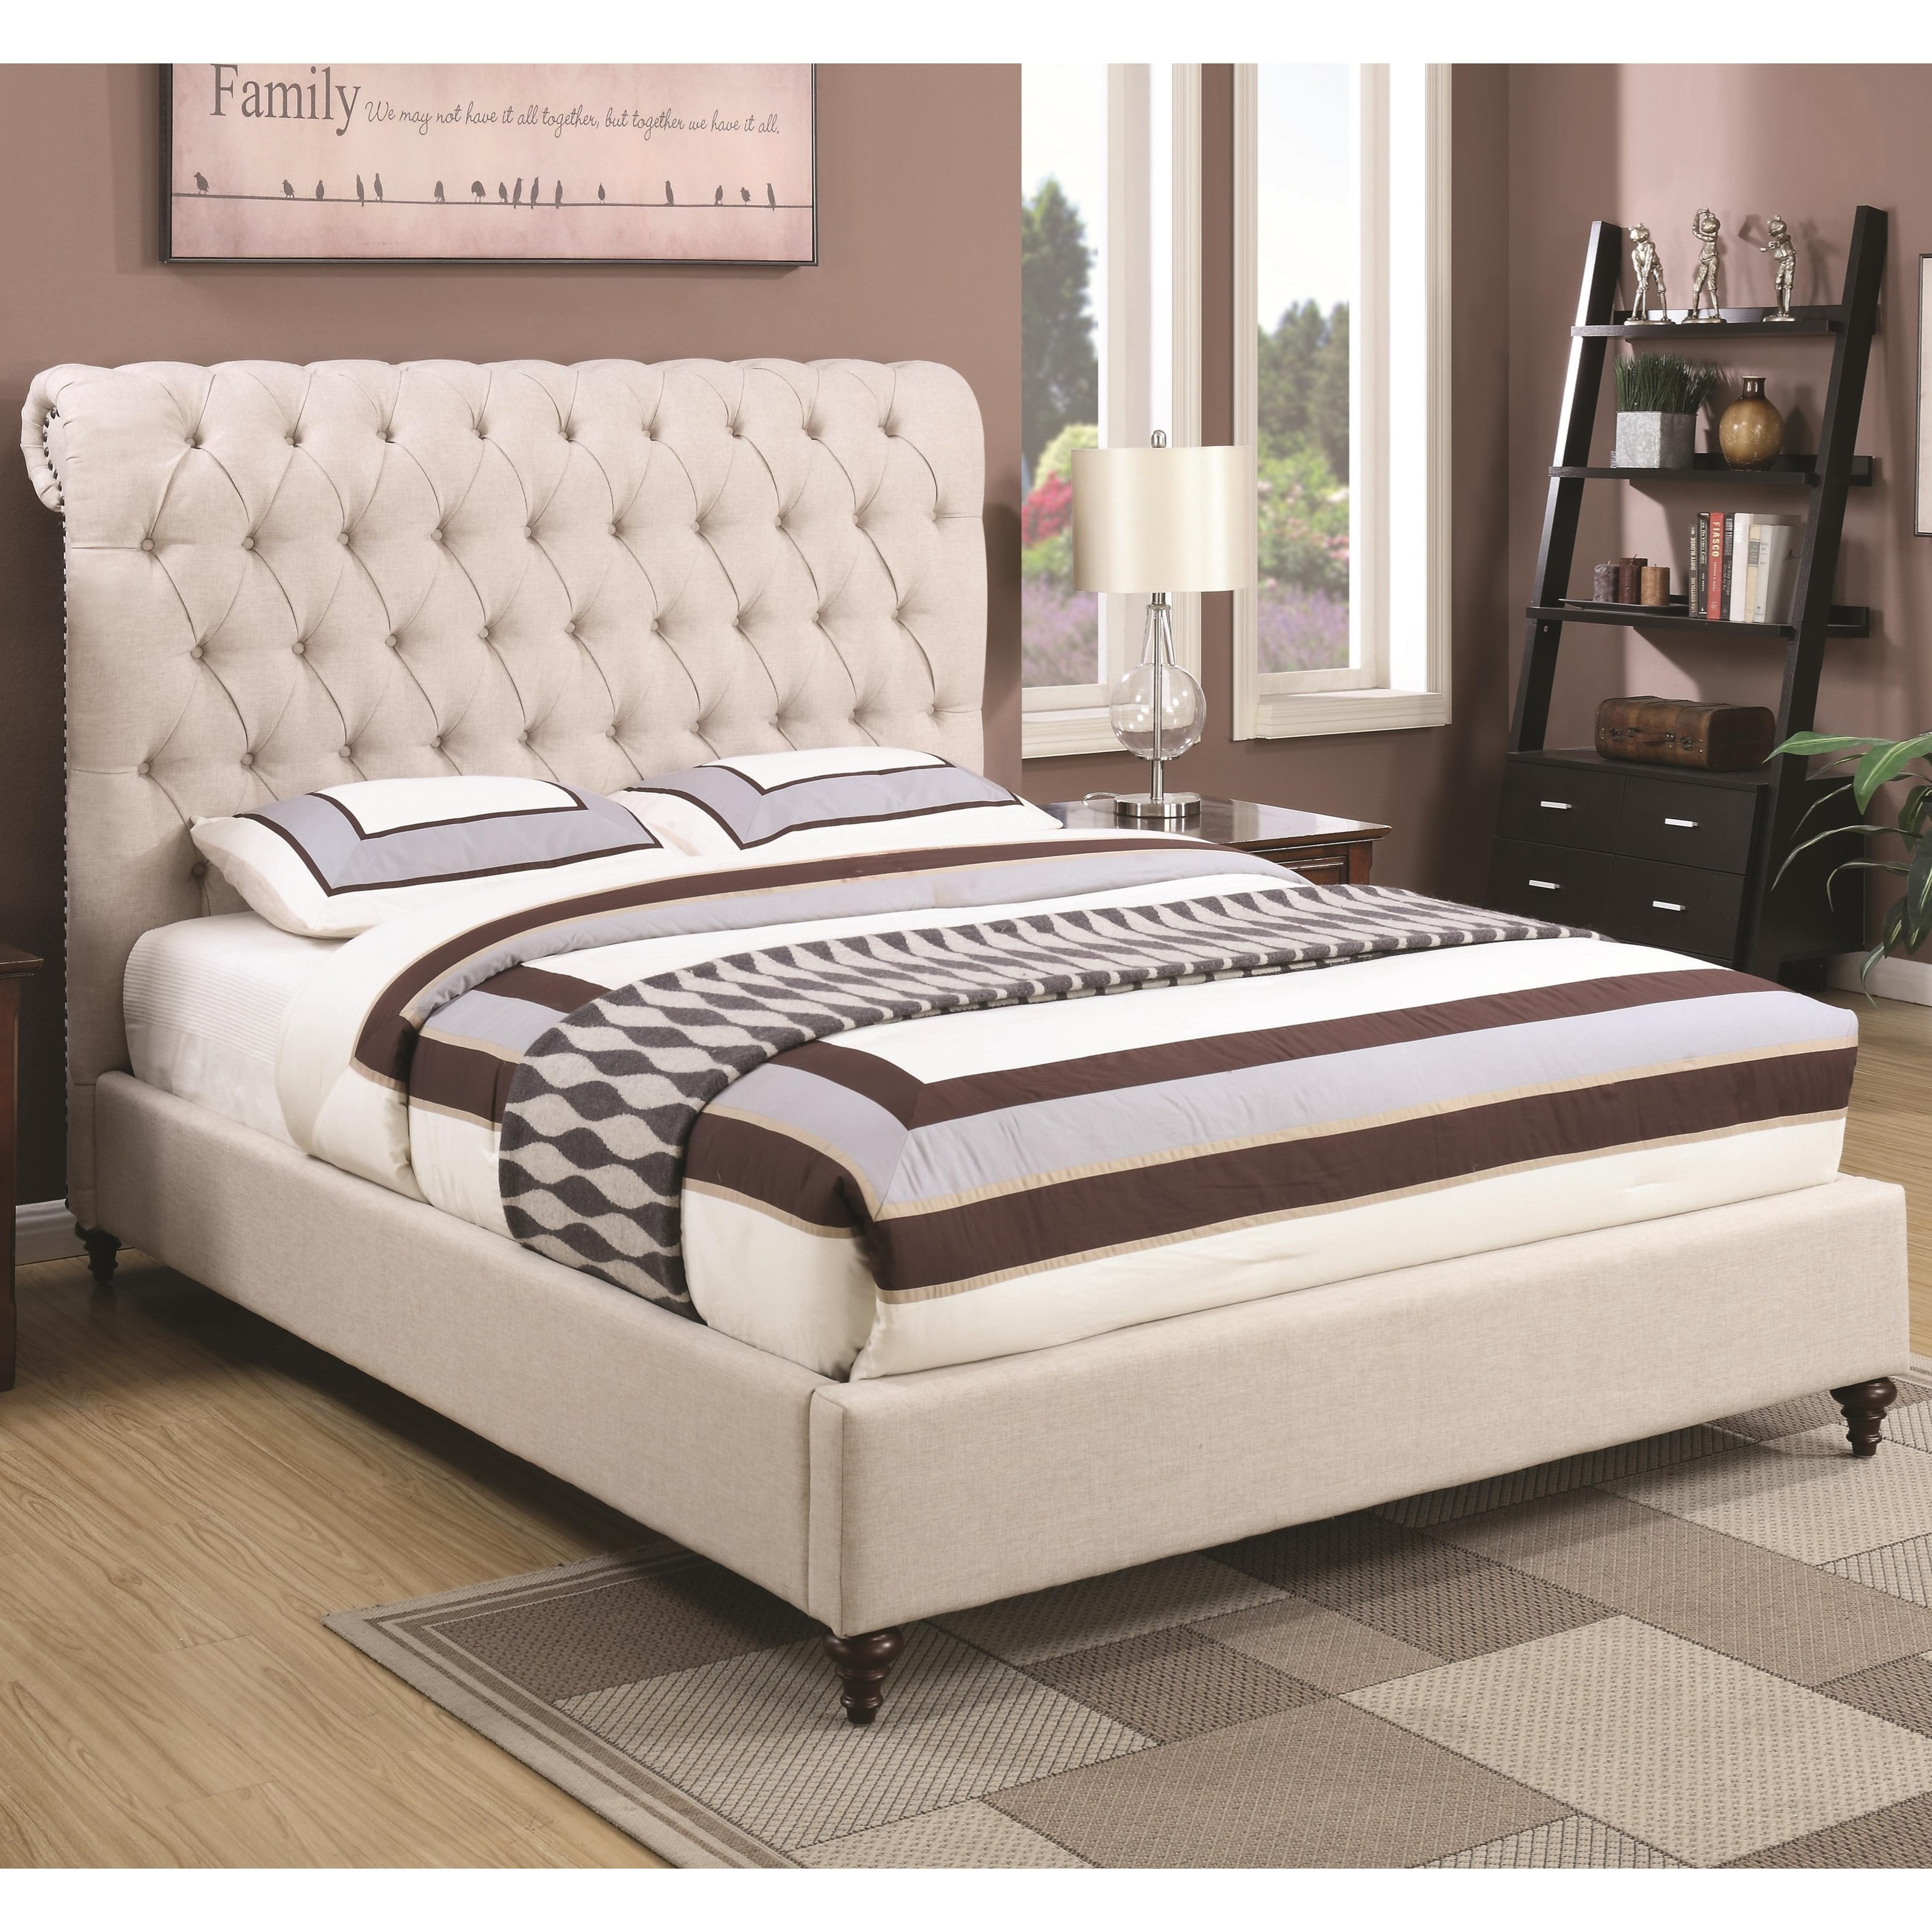 Devon Full Upholstered Bed by Coaster at Northeast Factory Direct